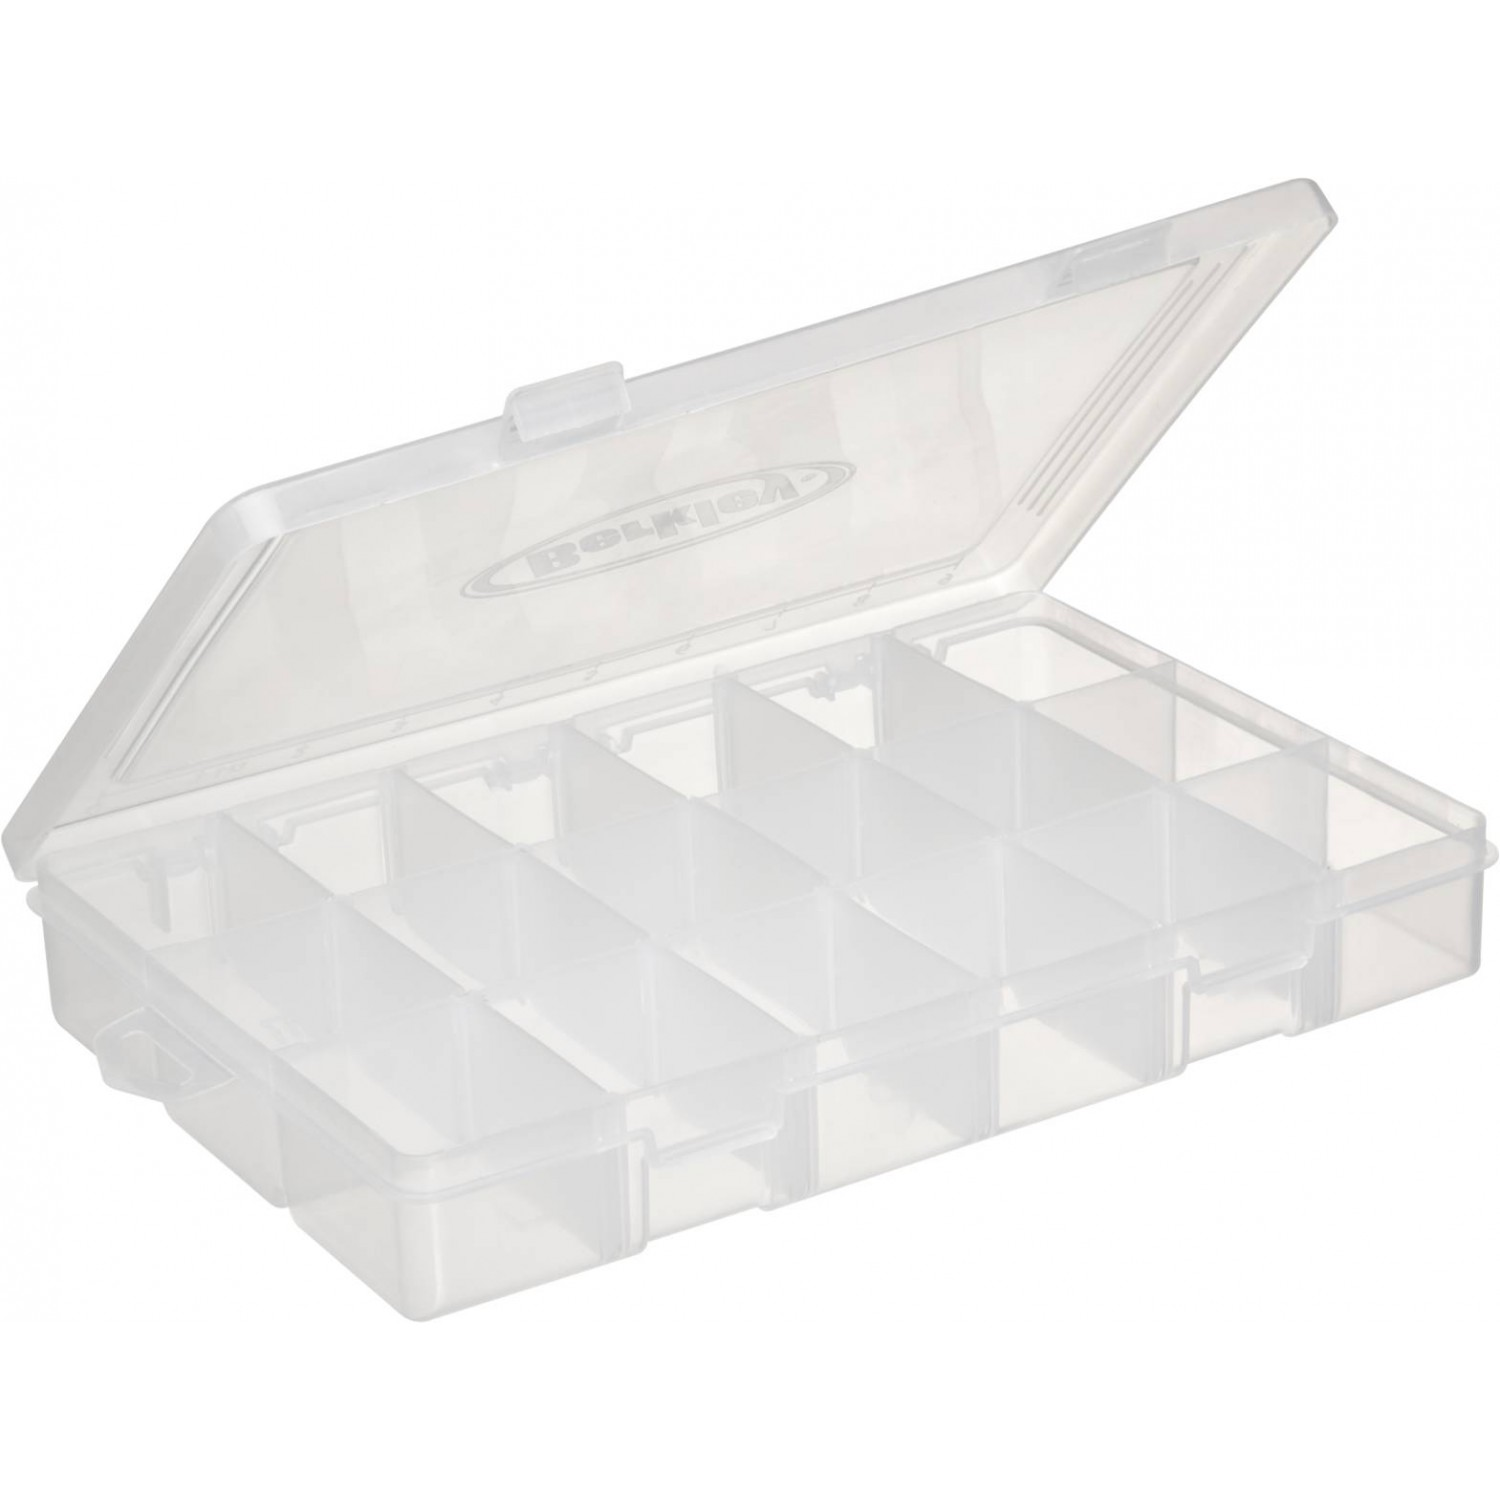 Berkley Tackle Tray 1170, 27x 18.5x 4.5cm